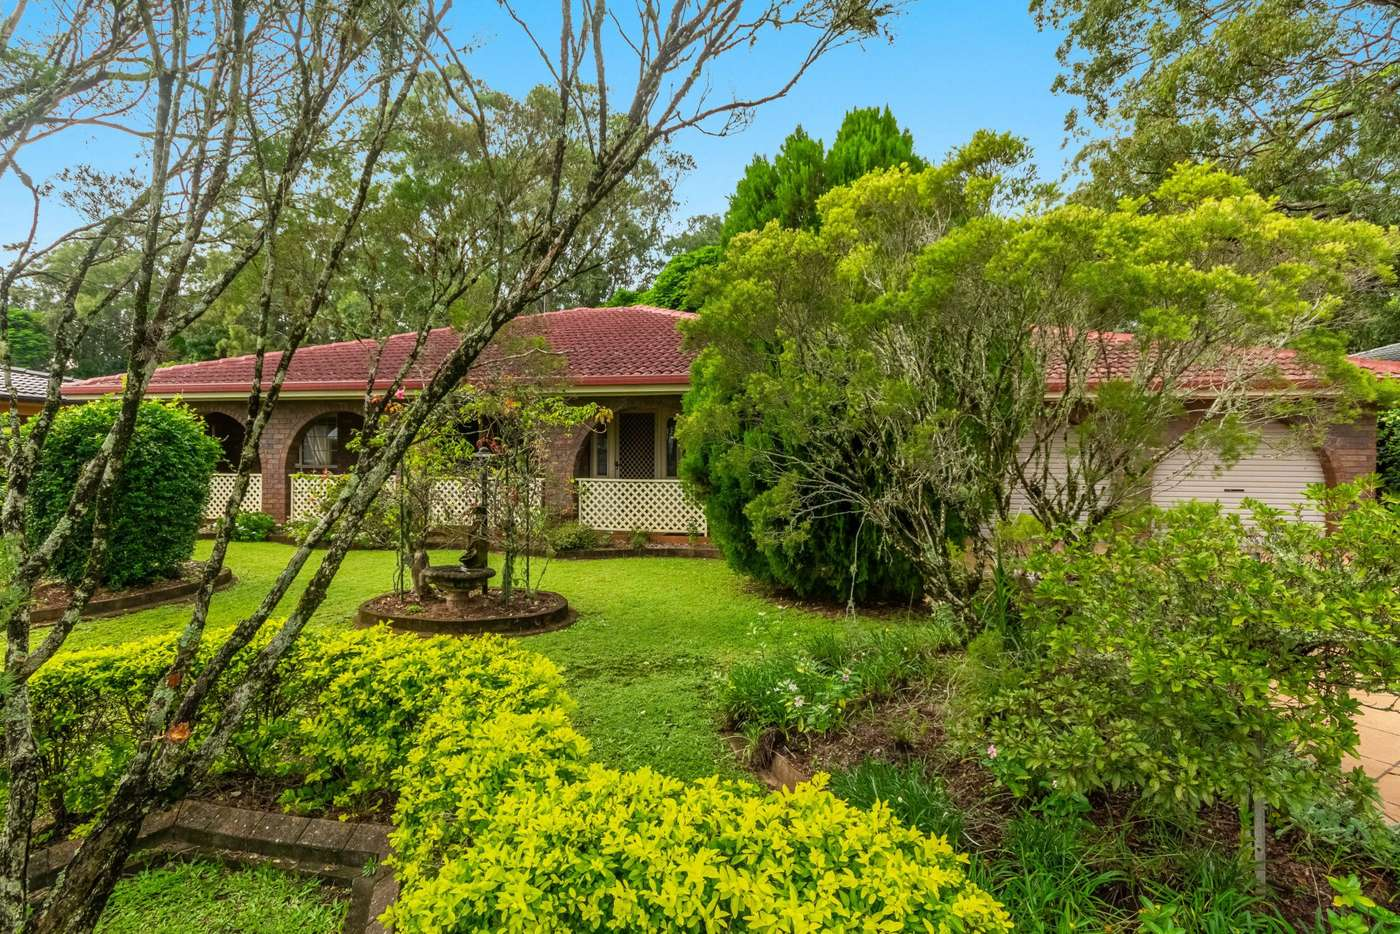 Main view of Homely house listing, 44 Beaumont Drive, East Lismore NSW 2480